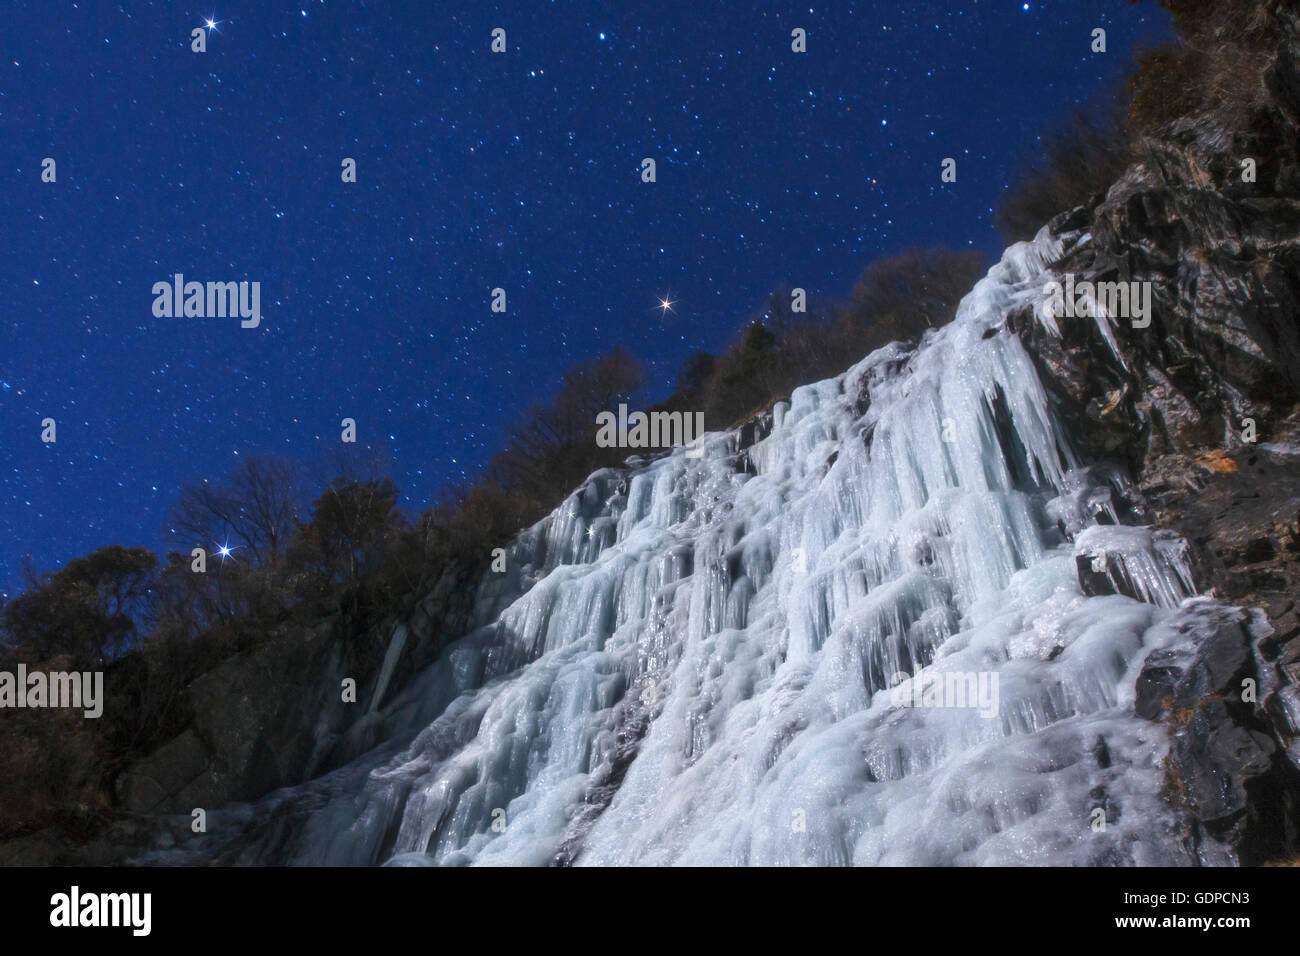 Stars of the Winter Triangle shine above an icefall on a moonlit night in the Sichuan province of China. - Stock Image